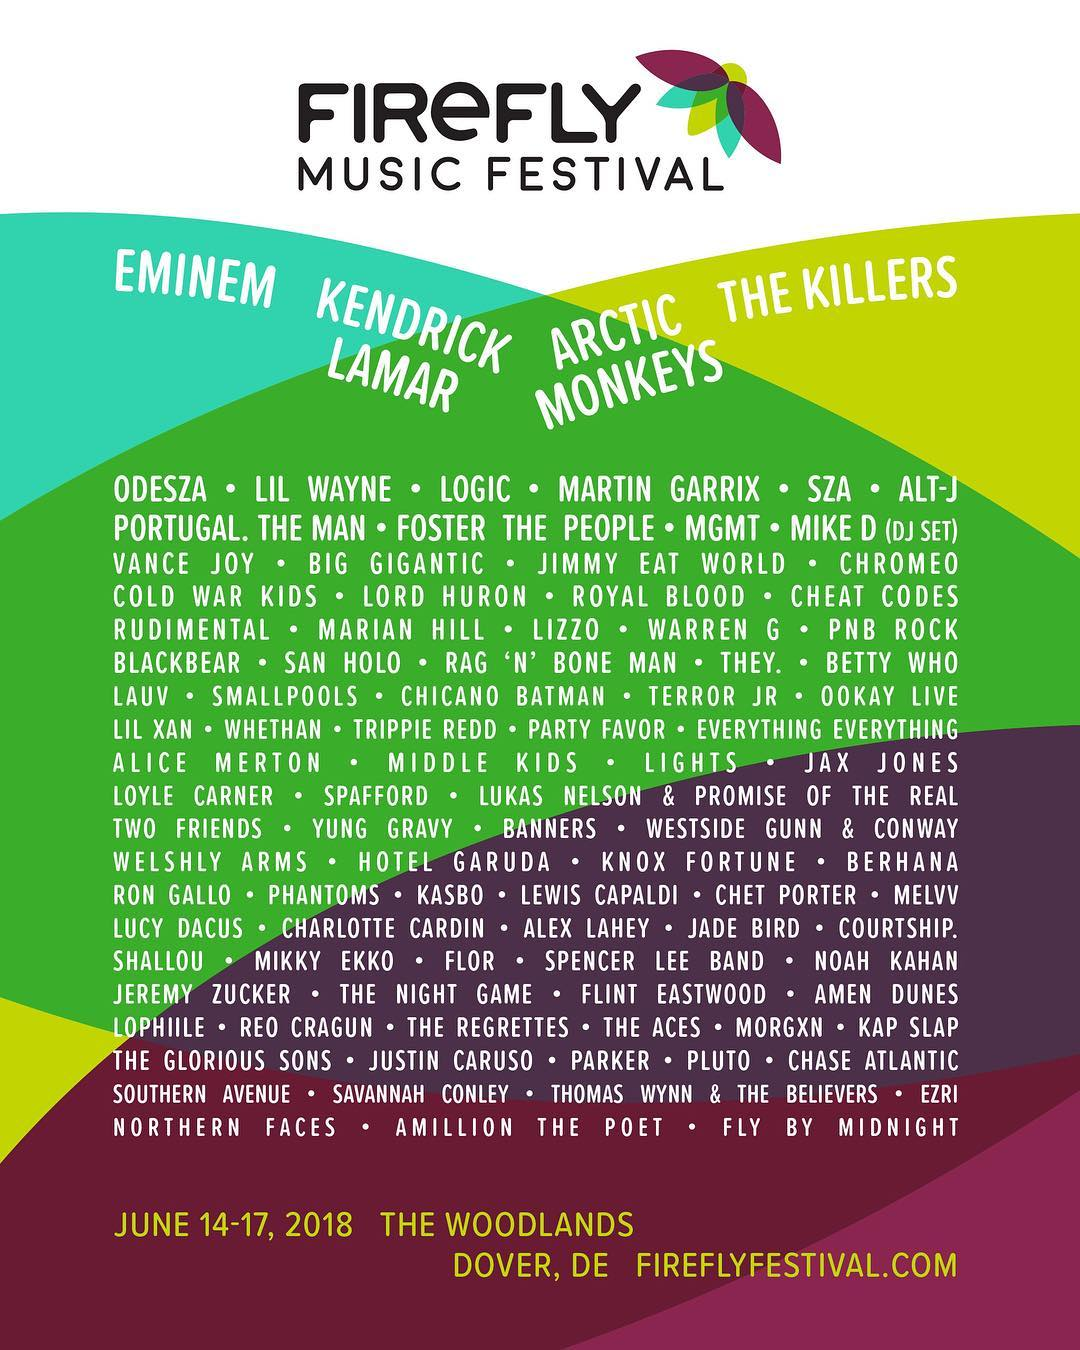 Firefly Music Festival Lineup Features Eminem, Kendrick Lamar & The Killers